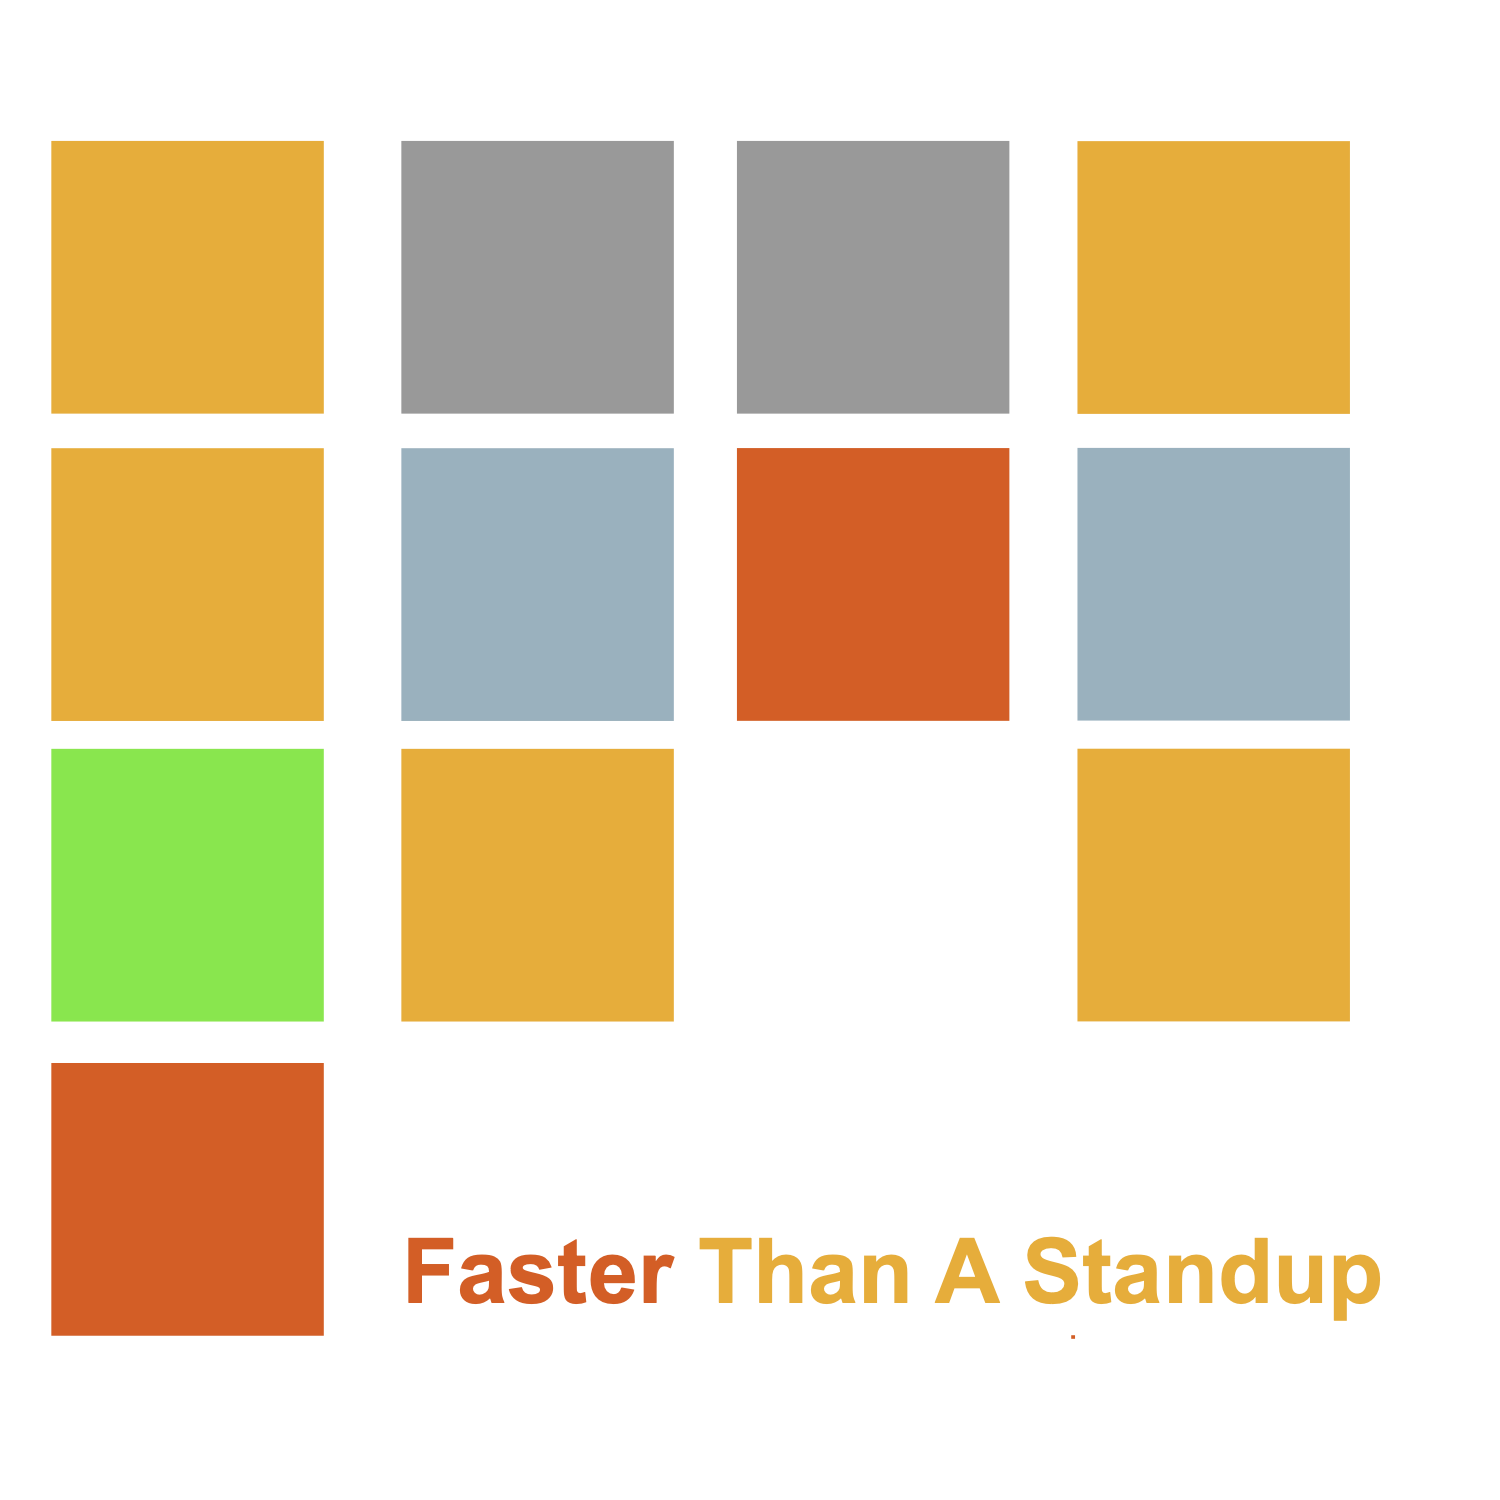 Faster Than A Standup